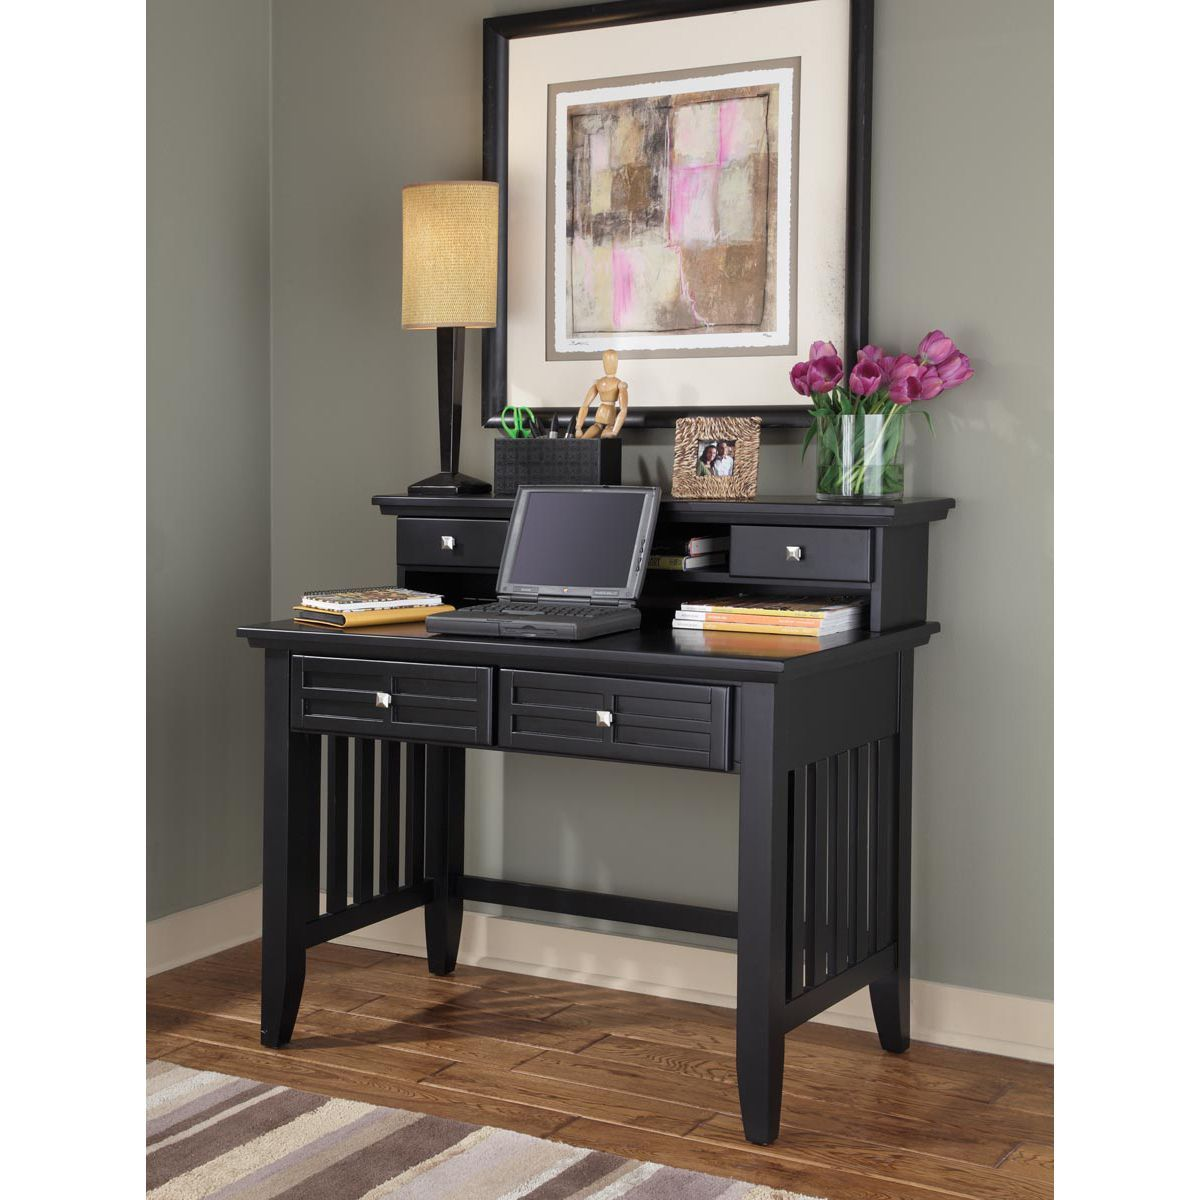 Add A Fresh Contemporary Look To Your Worke With This Black Poplar Student Desk